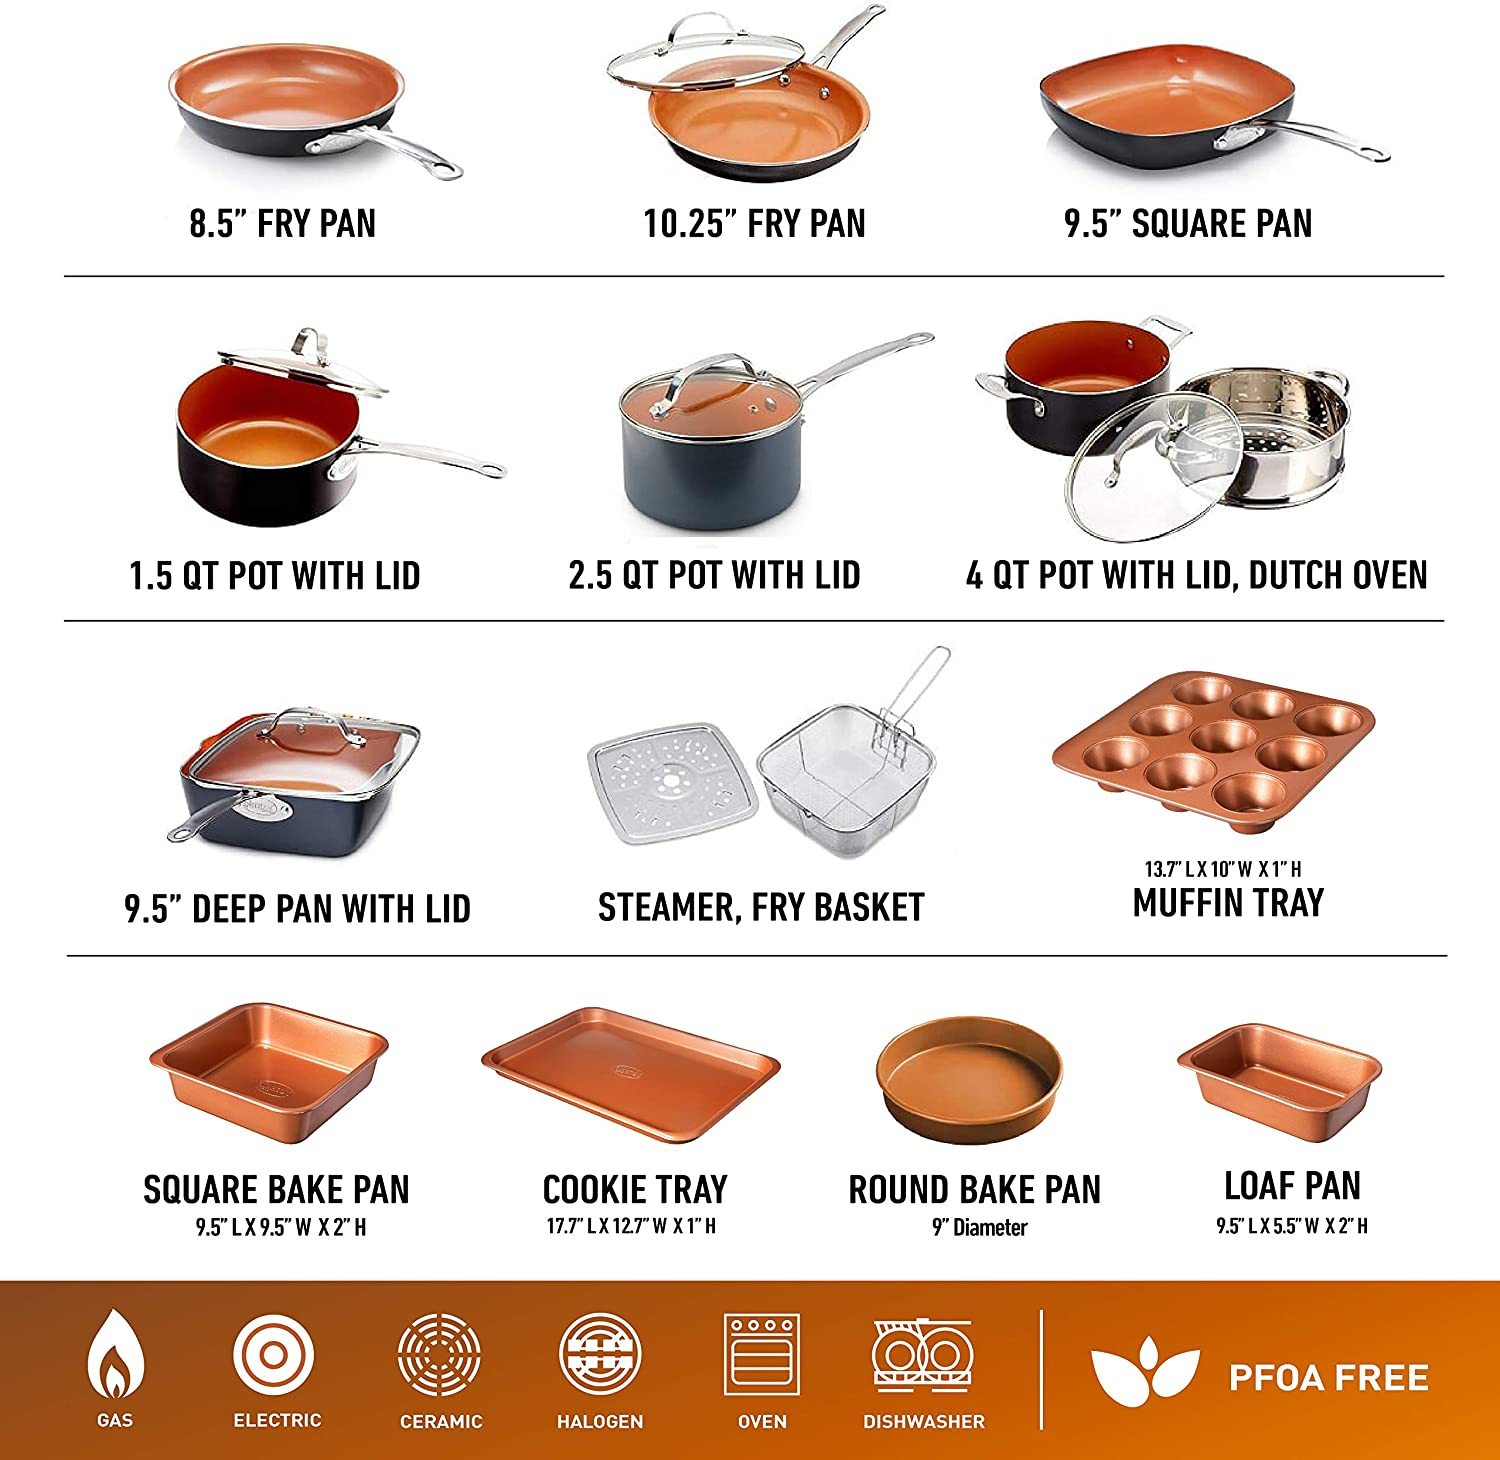 Gotham steel vs Red copper pan review